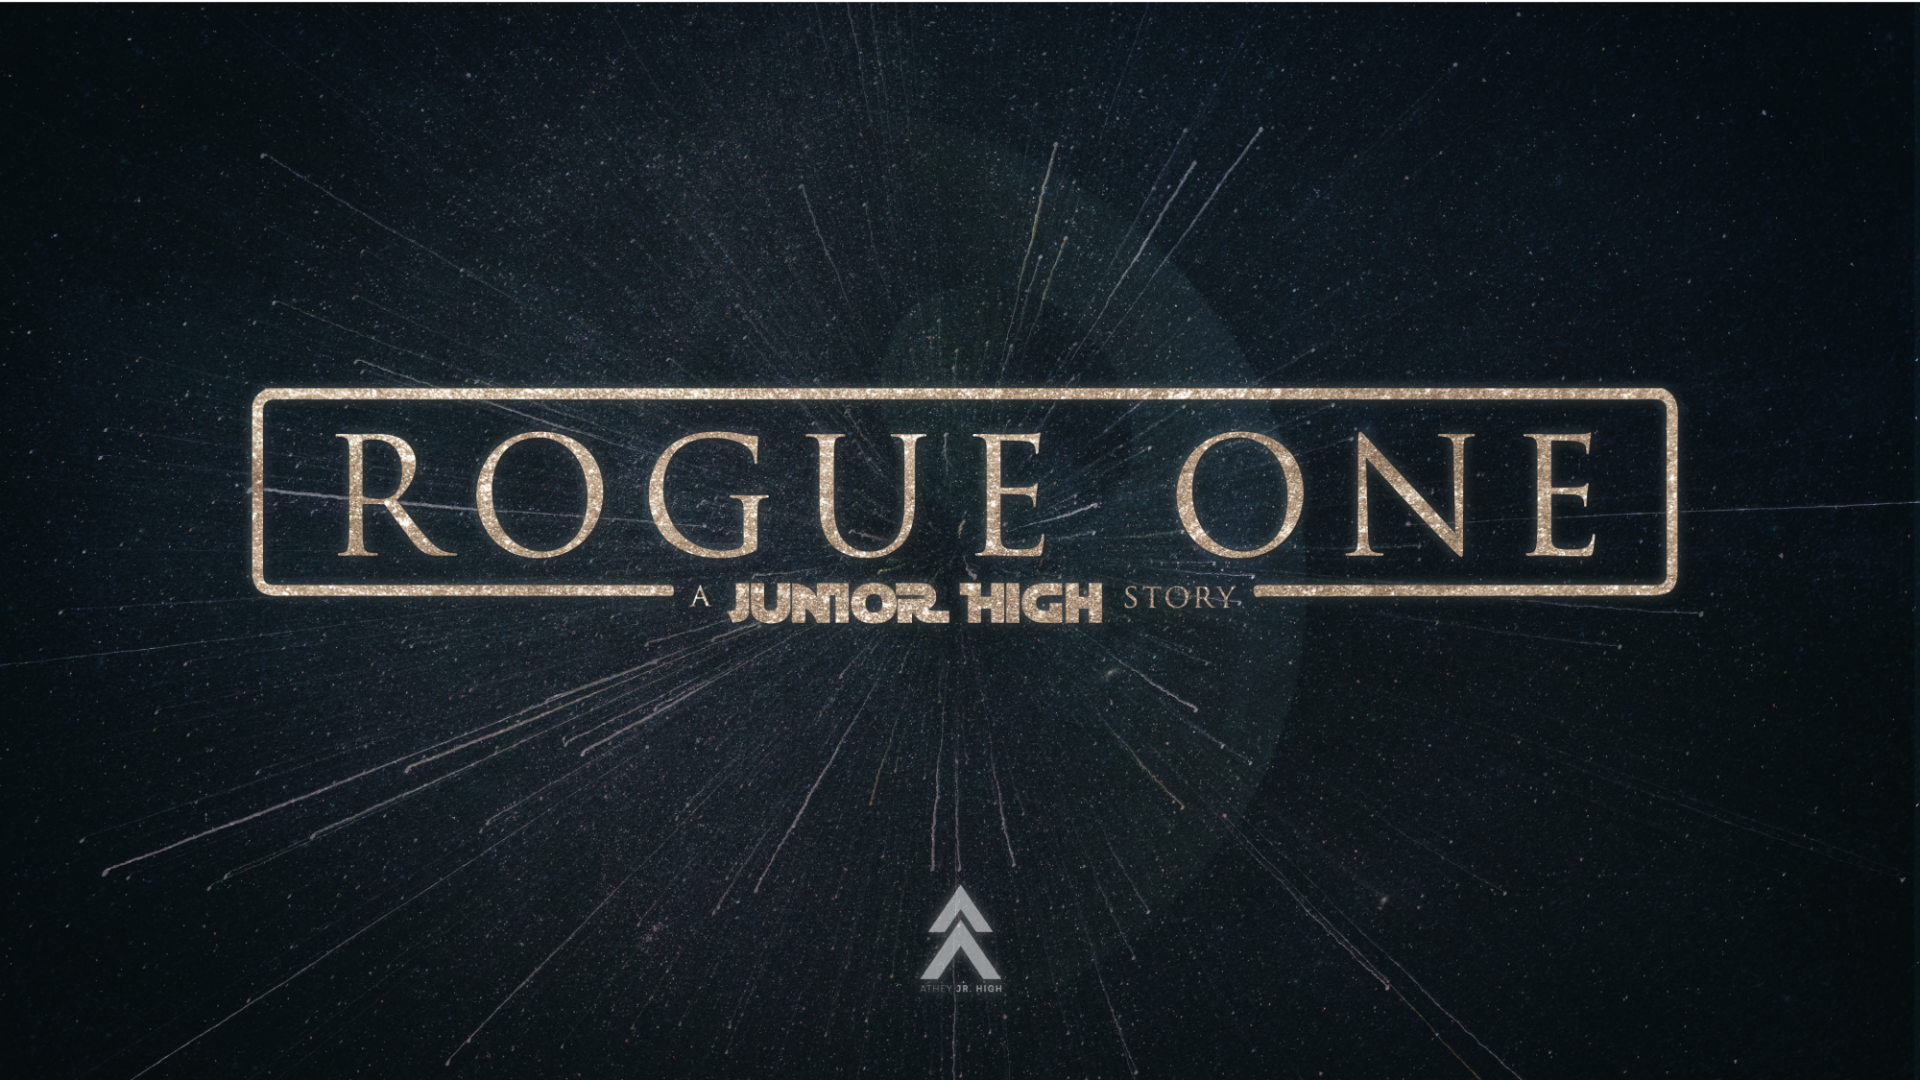 Poster for Junior High Rogue One